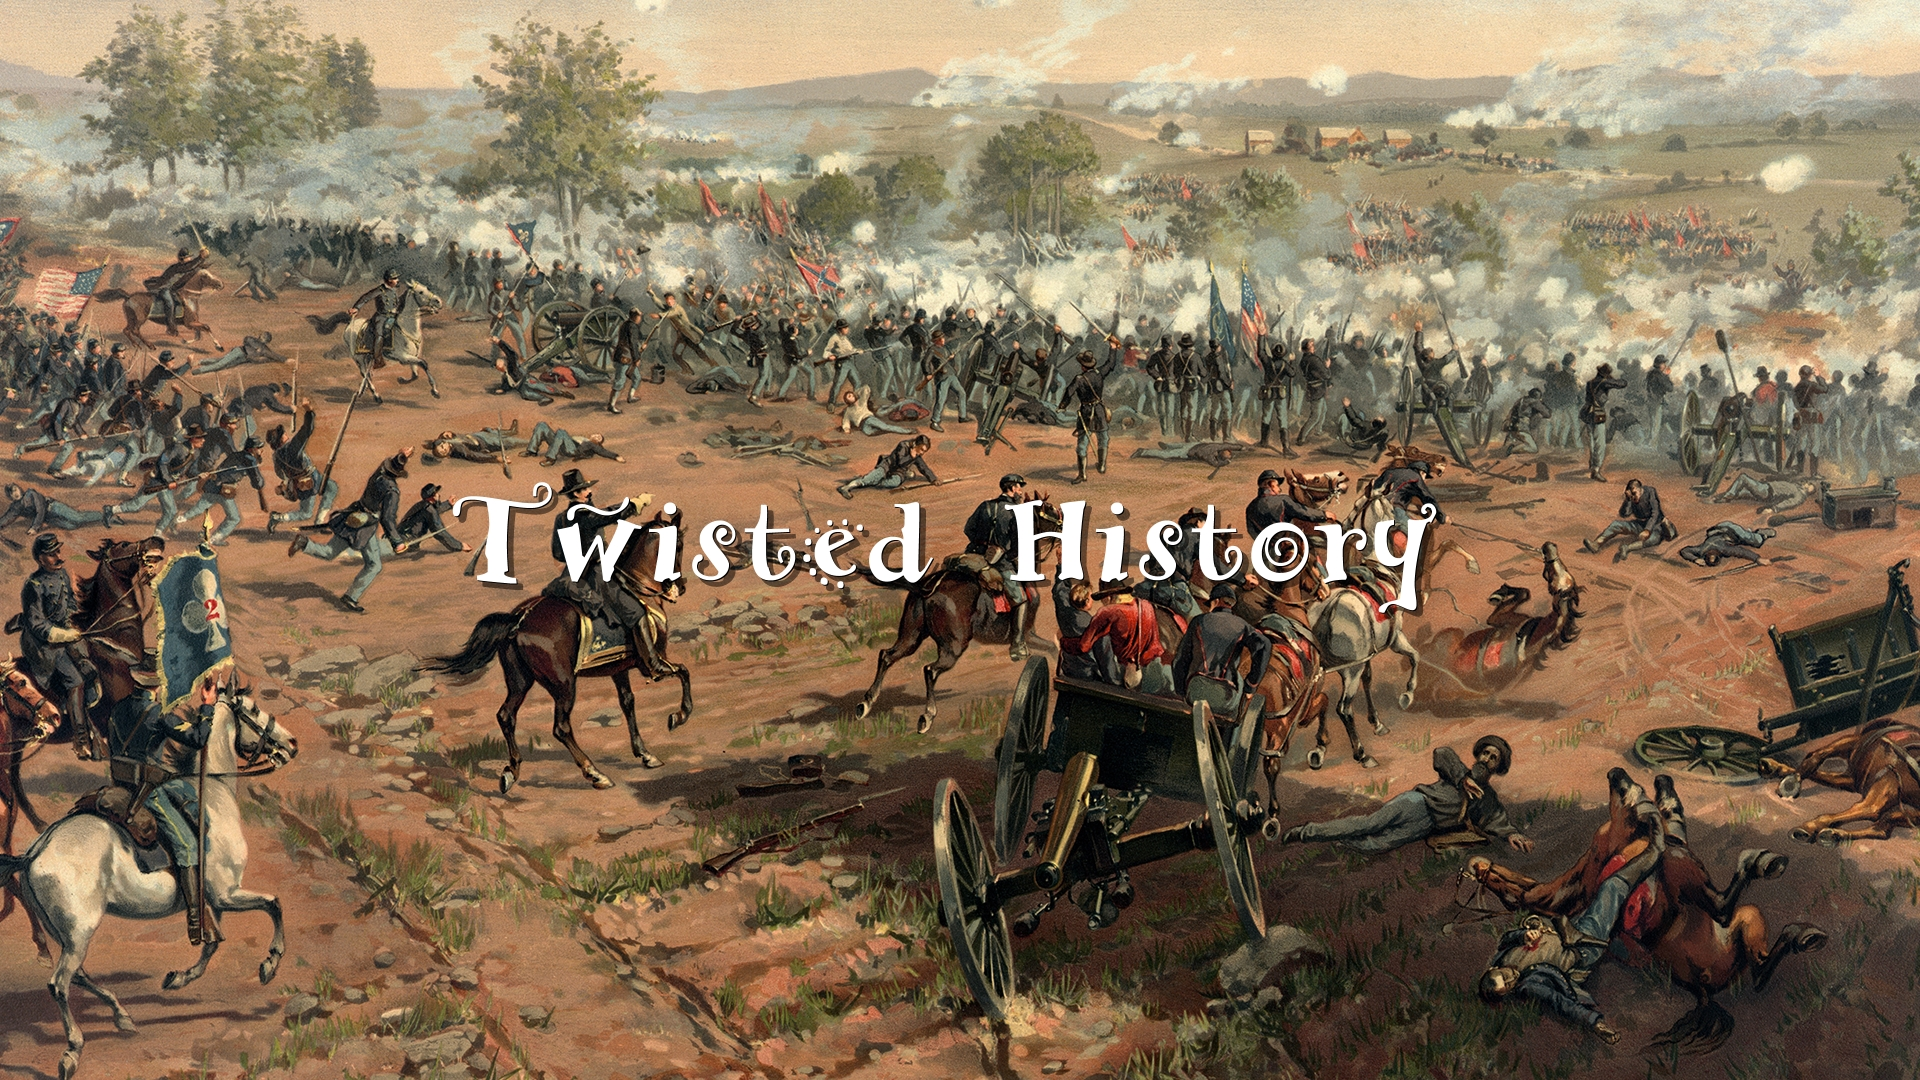 Twisted History